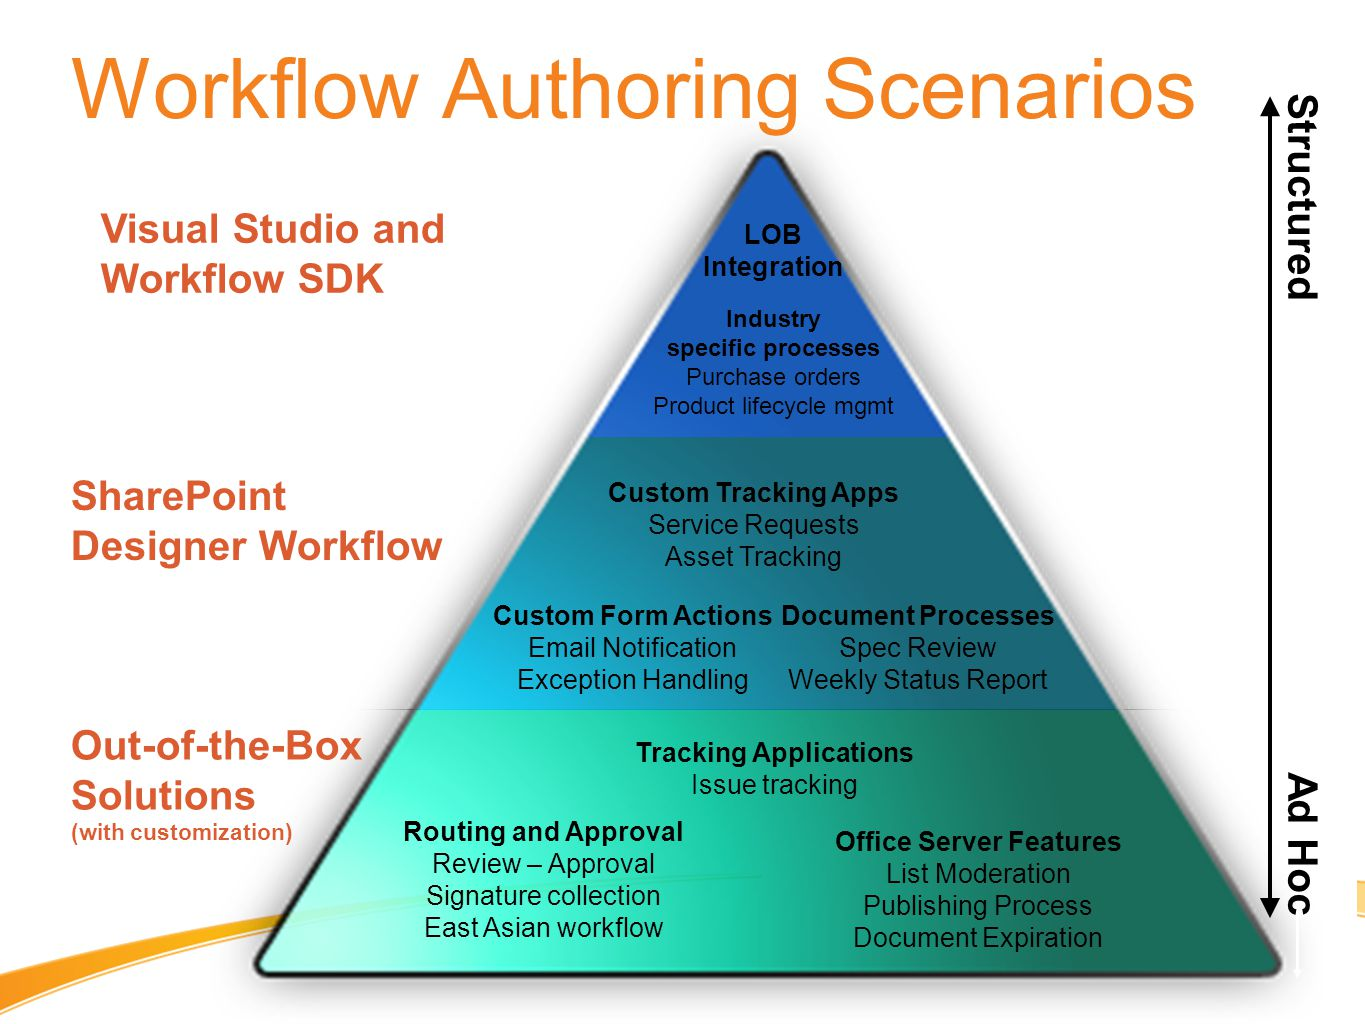 Workflow Authoring Scenarios Visual Studio and Workflow SDK Out-of-the-Box Solutions (with customization) SharePoint Designer Workflow Routing and Approval Review – Approval Signature collection East Asian workflow Structured Ad Hoc Office Server Features List Moderation Publishing Process Document Expiration Tracking Applications Issue tracking LOB Integration Custom Form Actions Email Notification Exception Handling Document Processes Spec Review Weekly Status Report Custom Tracking Apps Service Requests Asset Tracking Industry specific processes Purchase orders Product lifecycle mgmt